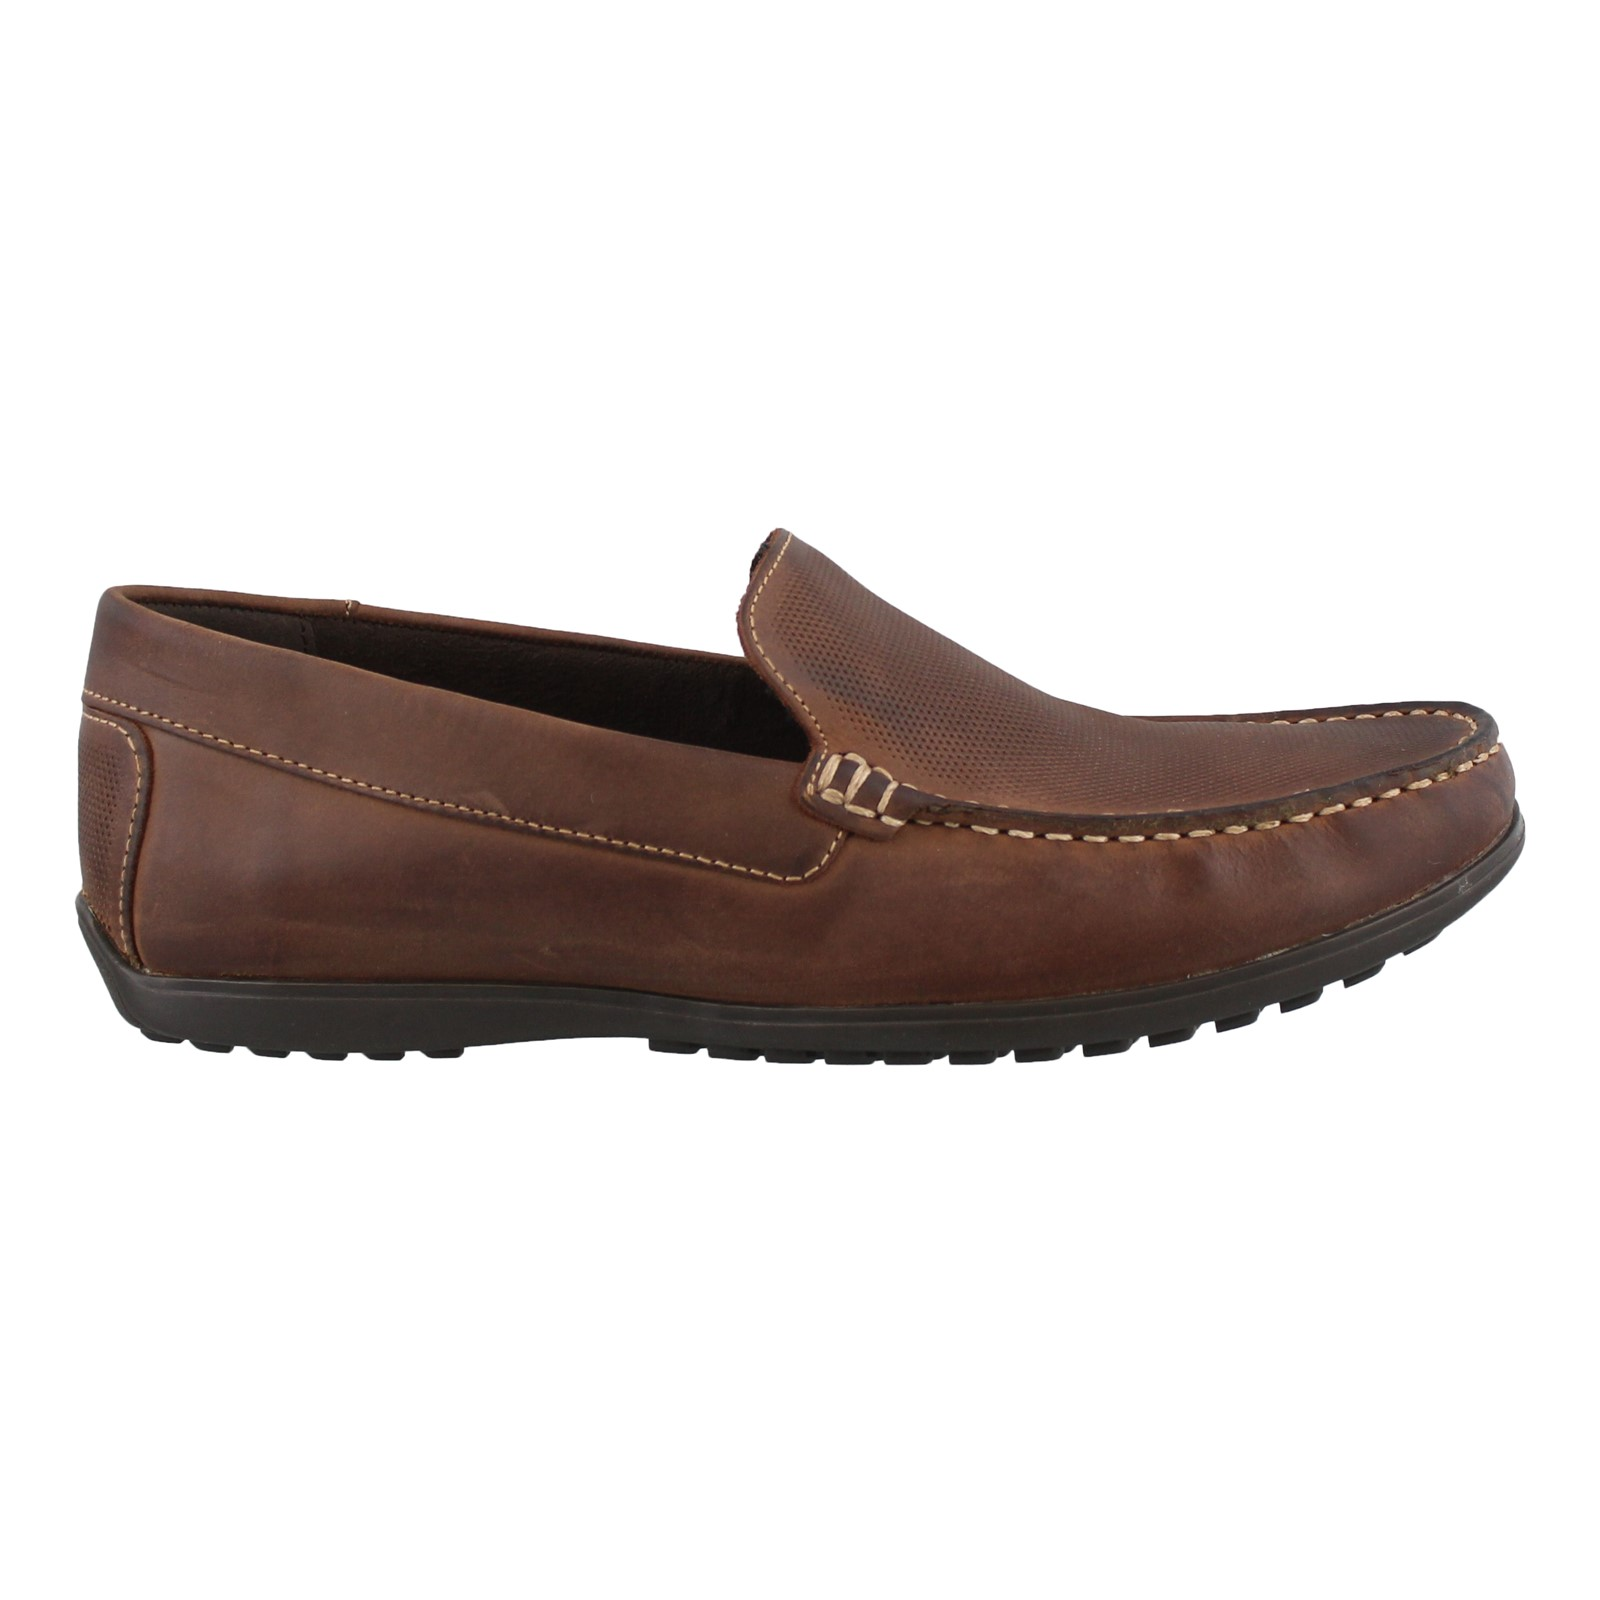 Men's Rockport, Bayley Venetian Slip on Shoes